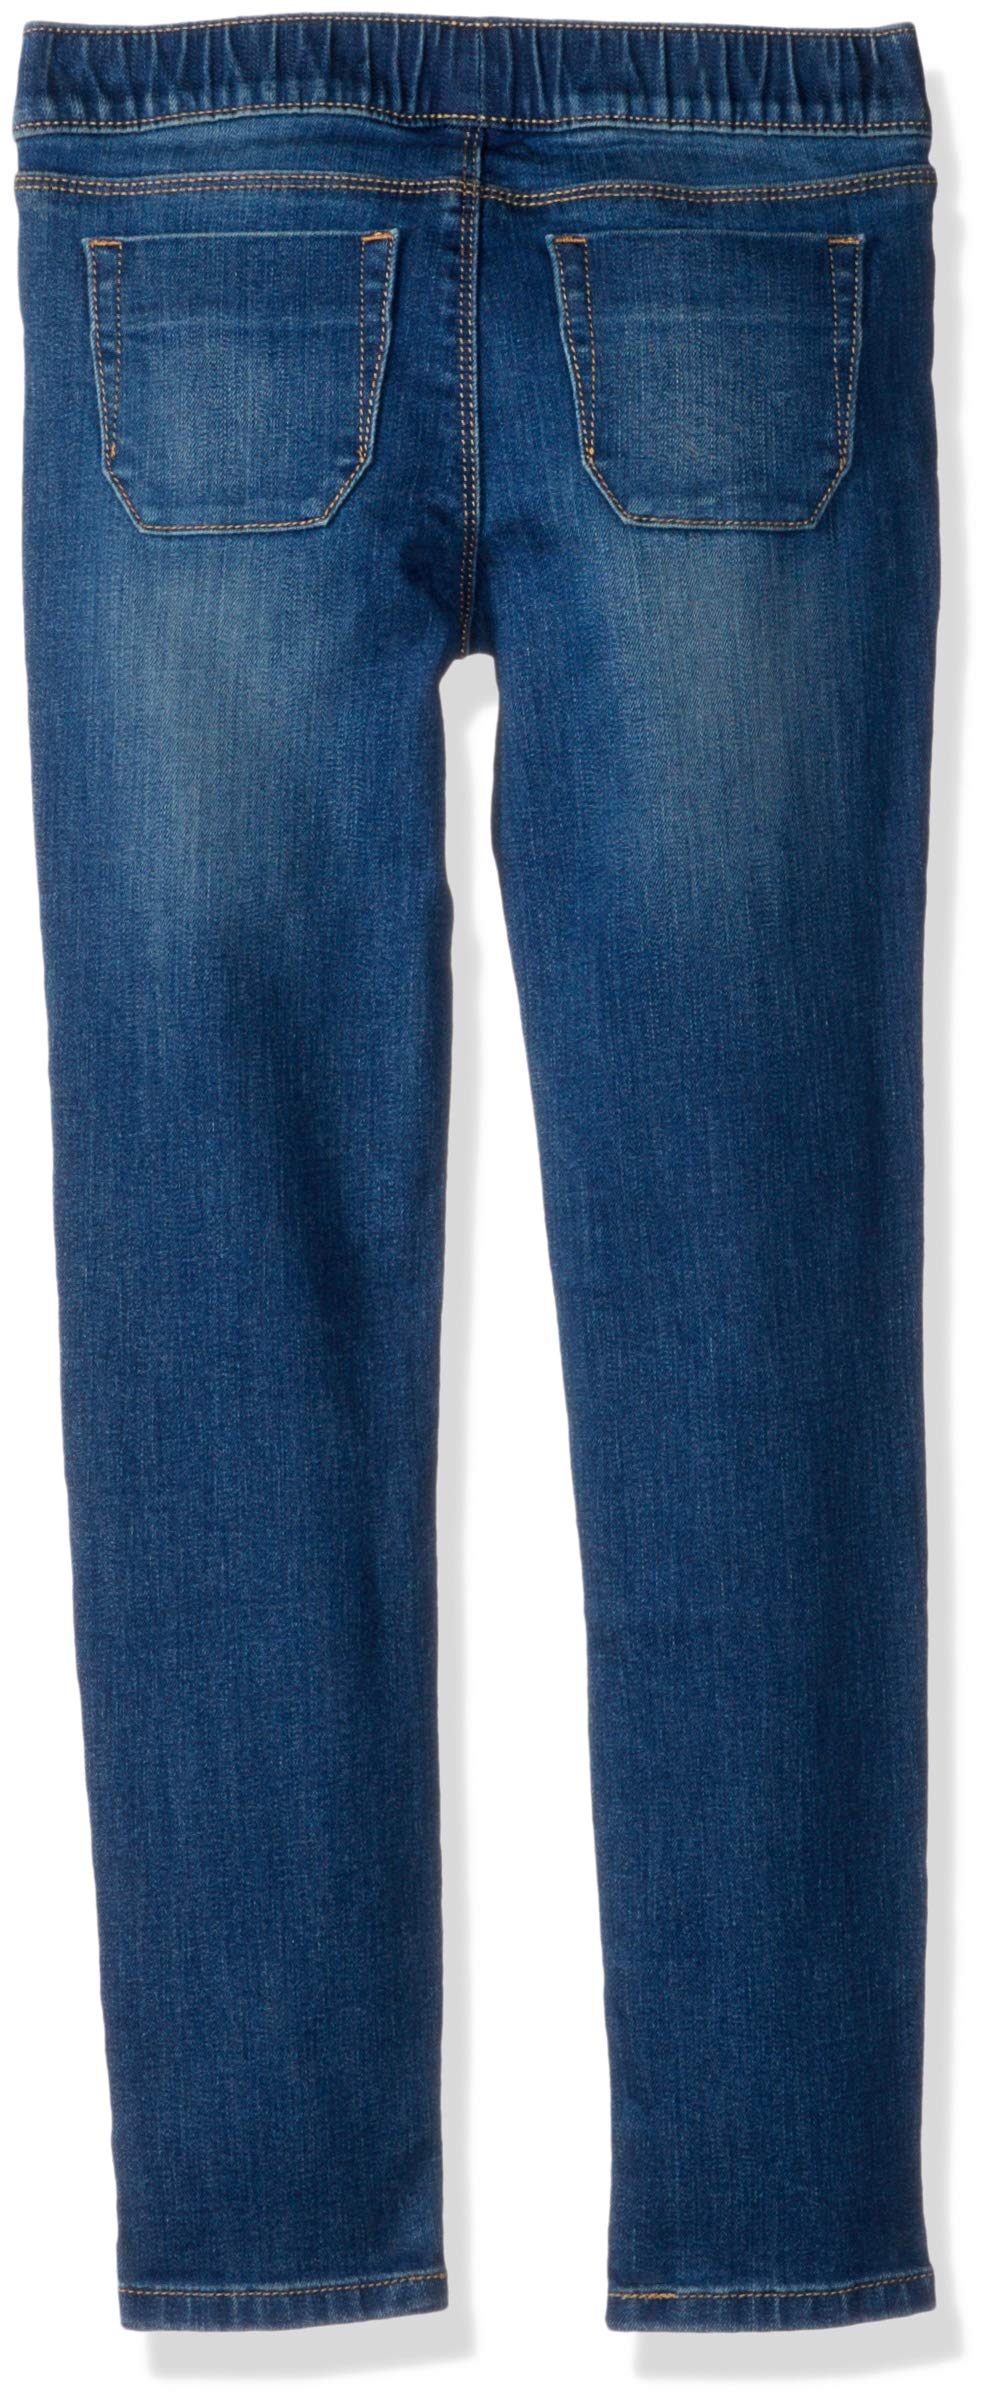 Tommy Hilfiger Girls' Adaptive Jegging Jeans with Elastic Waist and Adjustable Hems, KEITH wash 10 by Tommy Hilfiger (Image #2)